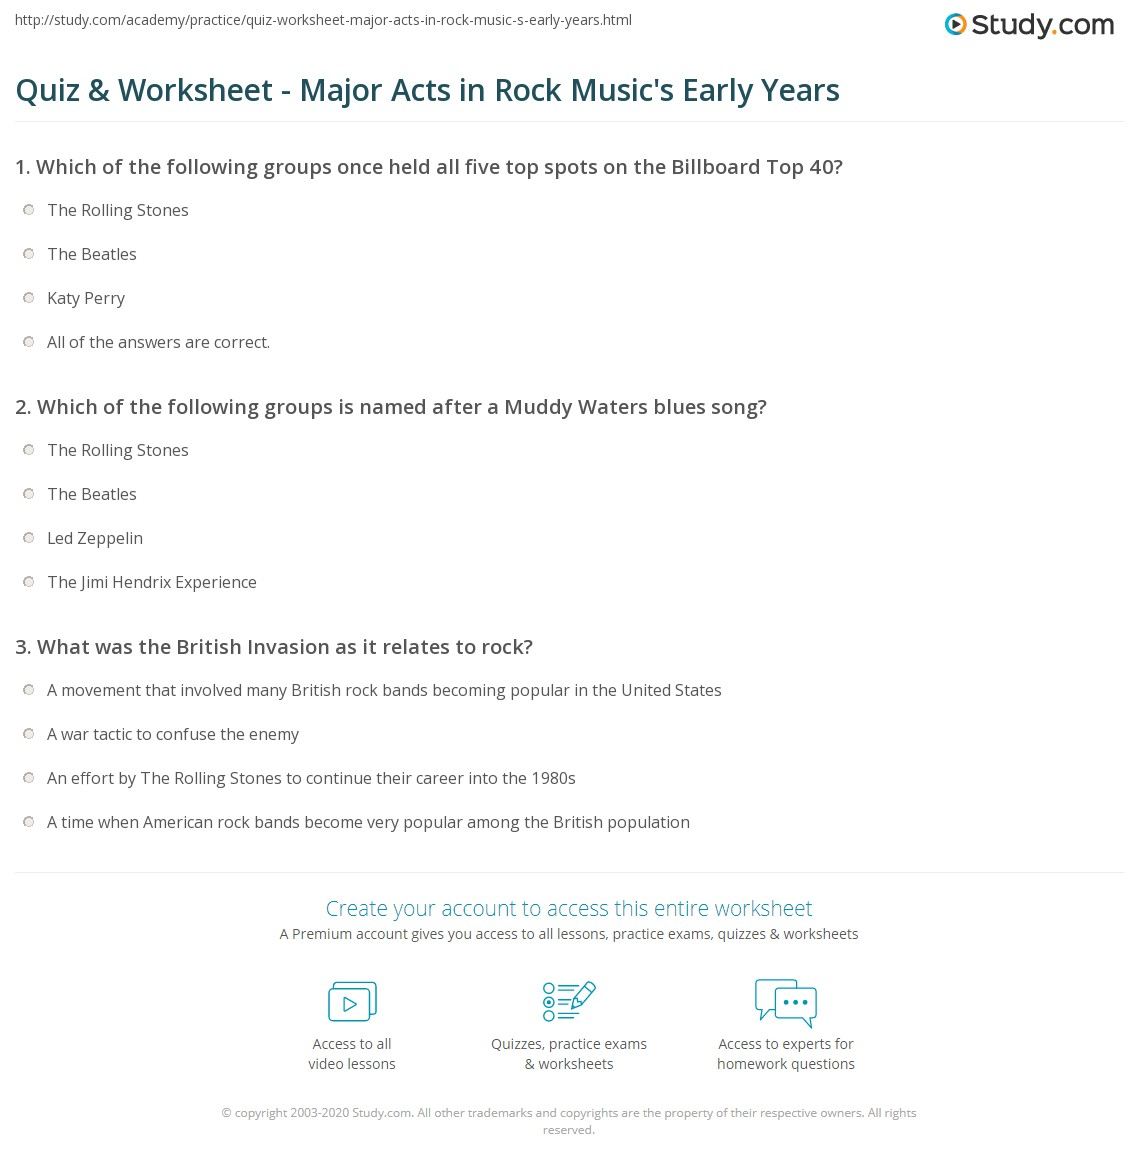 Quiz & Worksheet - Major Acts in Rock Music's Early Years